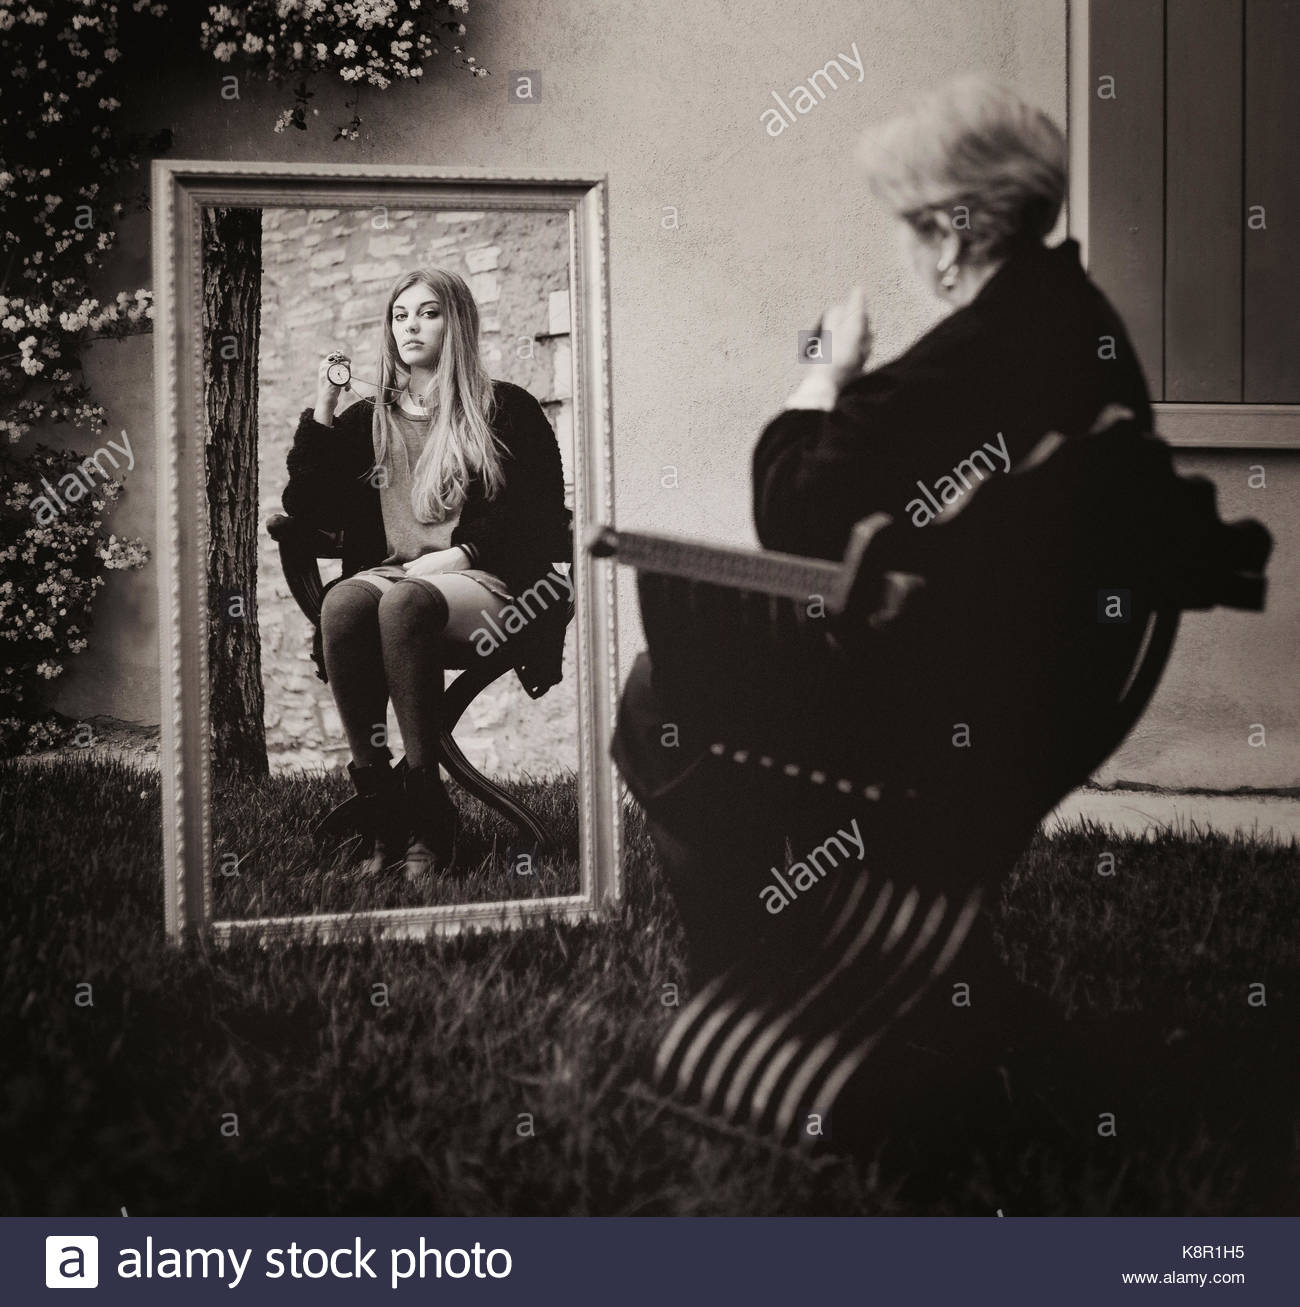 Time in the mirror: a conceptual image representing ageing and the passing of time - Stock Image